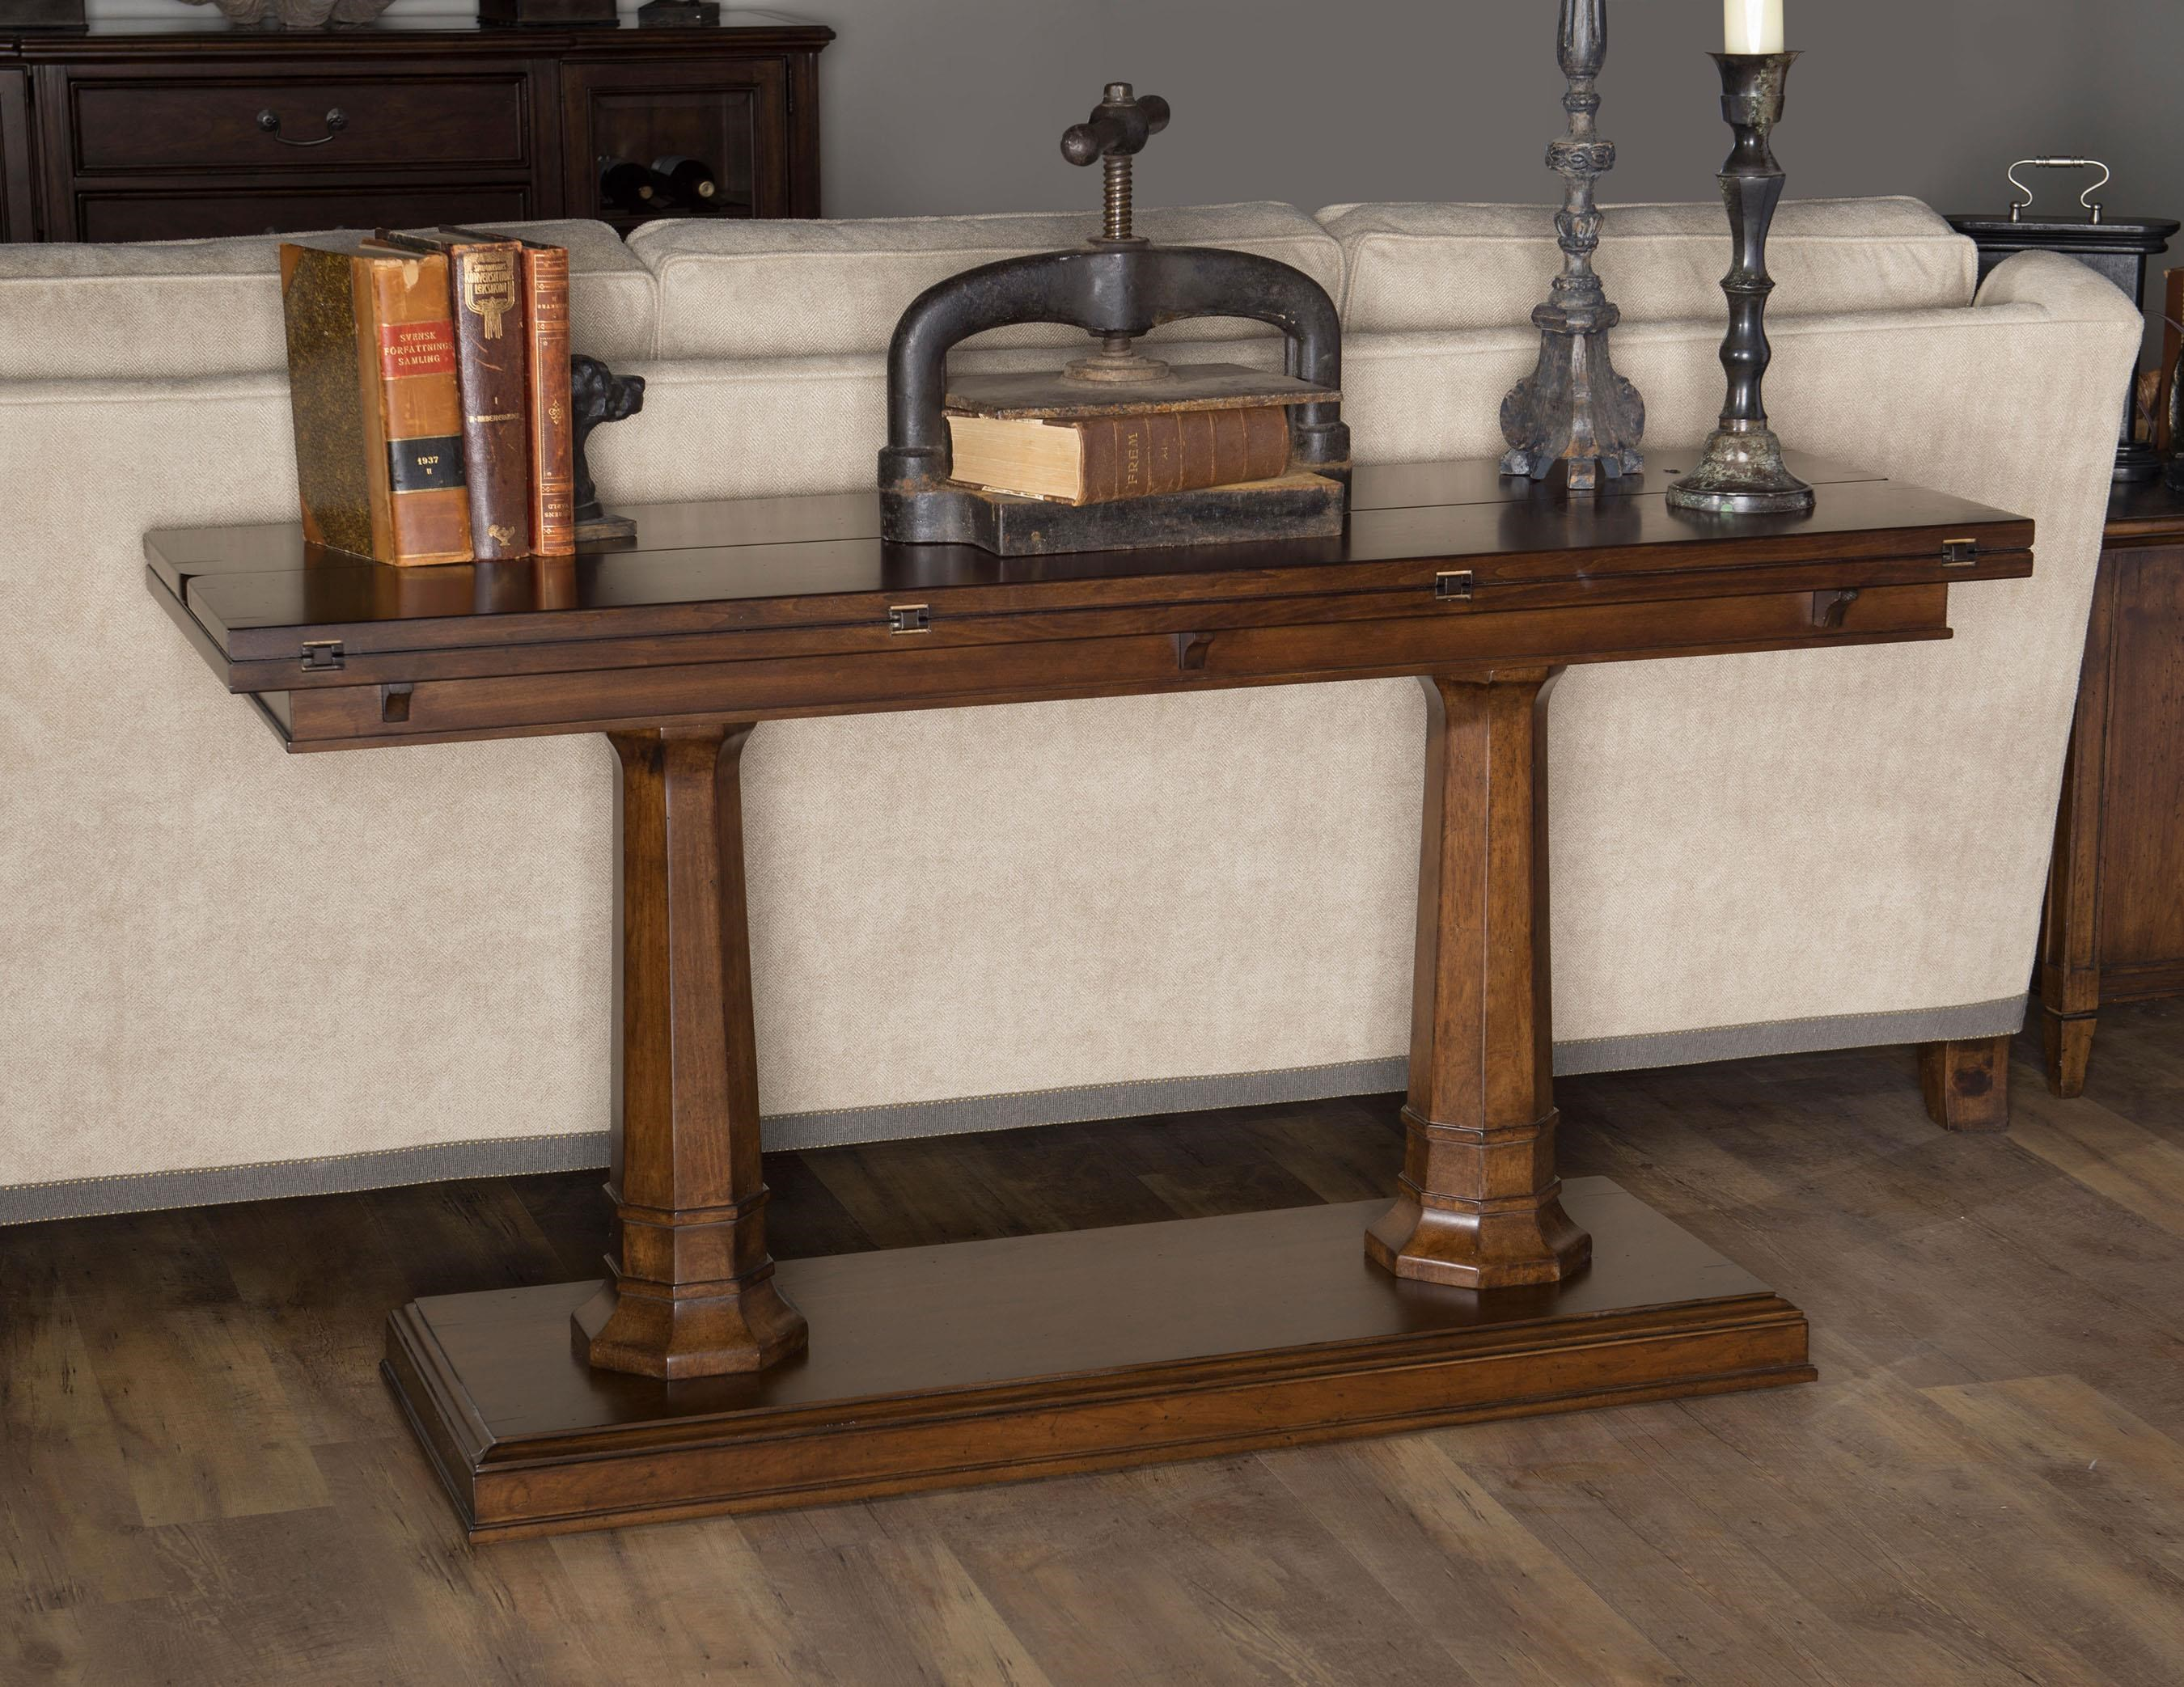 Morris Home Furnishings Upstate - Upstate Flip/Top Sofa Console - Item Number: 793062025